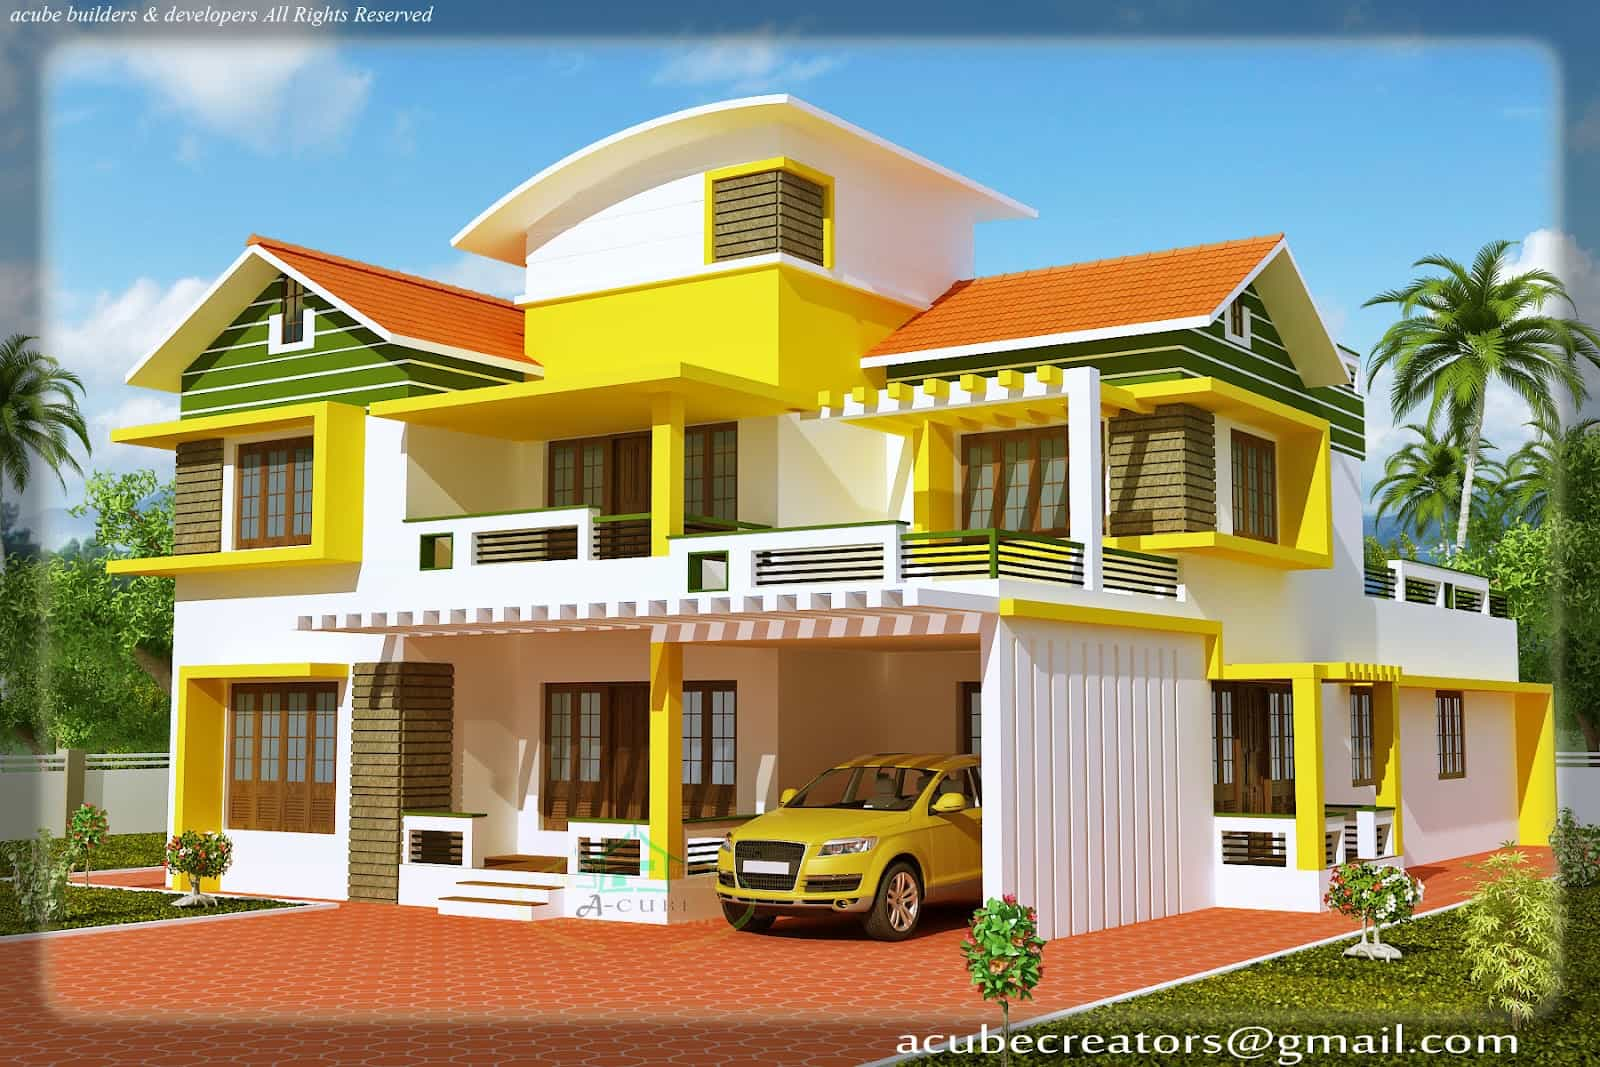 Kerala House Photos http://www.keralahouseplanner.com/kerala-house-model-duplex-house-elevation-at-2700-sq-ft/